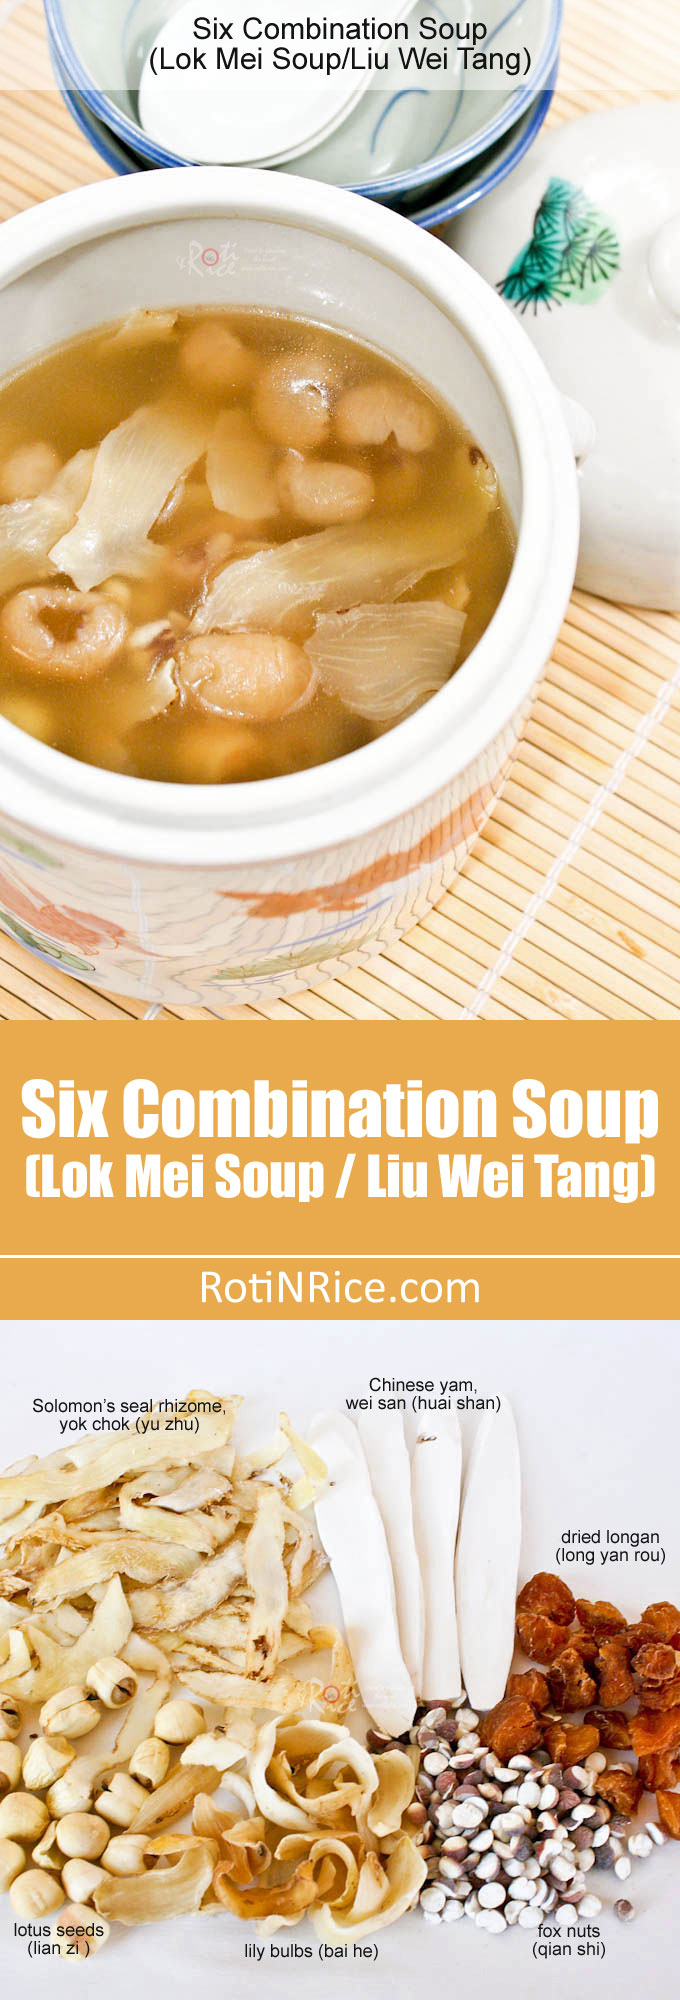 "Discover and combine your own six Chinese dried herbs for this nutritious and classic Six Combination Soup, popularly known as ""Lok Mei Tong"". 